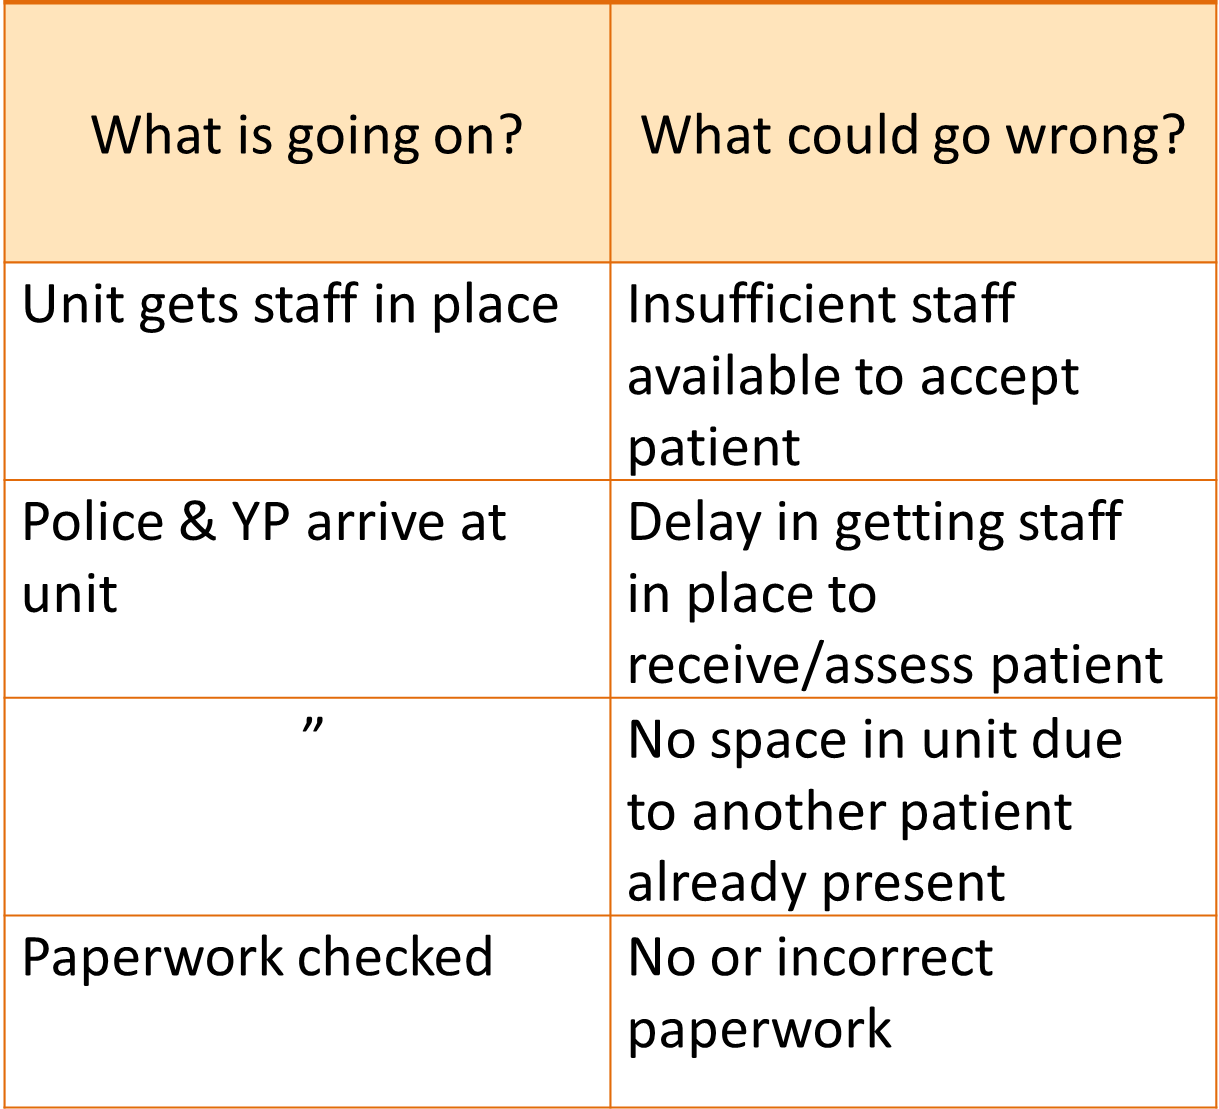 An example from an SSA. This one is a portion from the risk table from the Section 136 case study, showing the things that could go wrong at some of the steps in the process. The first step is: Unit gets staff in place. This could go wrong by insufficient staff being available to accept patient. The next step is: Police and Young Person arrive at unit. This could go wrong by a Delay in getting staff in place, or No space in unit due to another patient already present. Another step is: Paperwork checked. This could go wrong by No or incorrect paperwork being available.